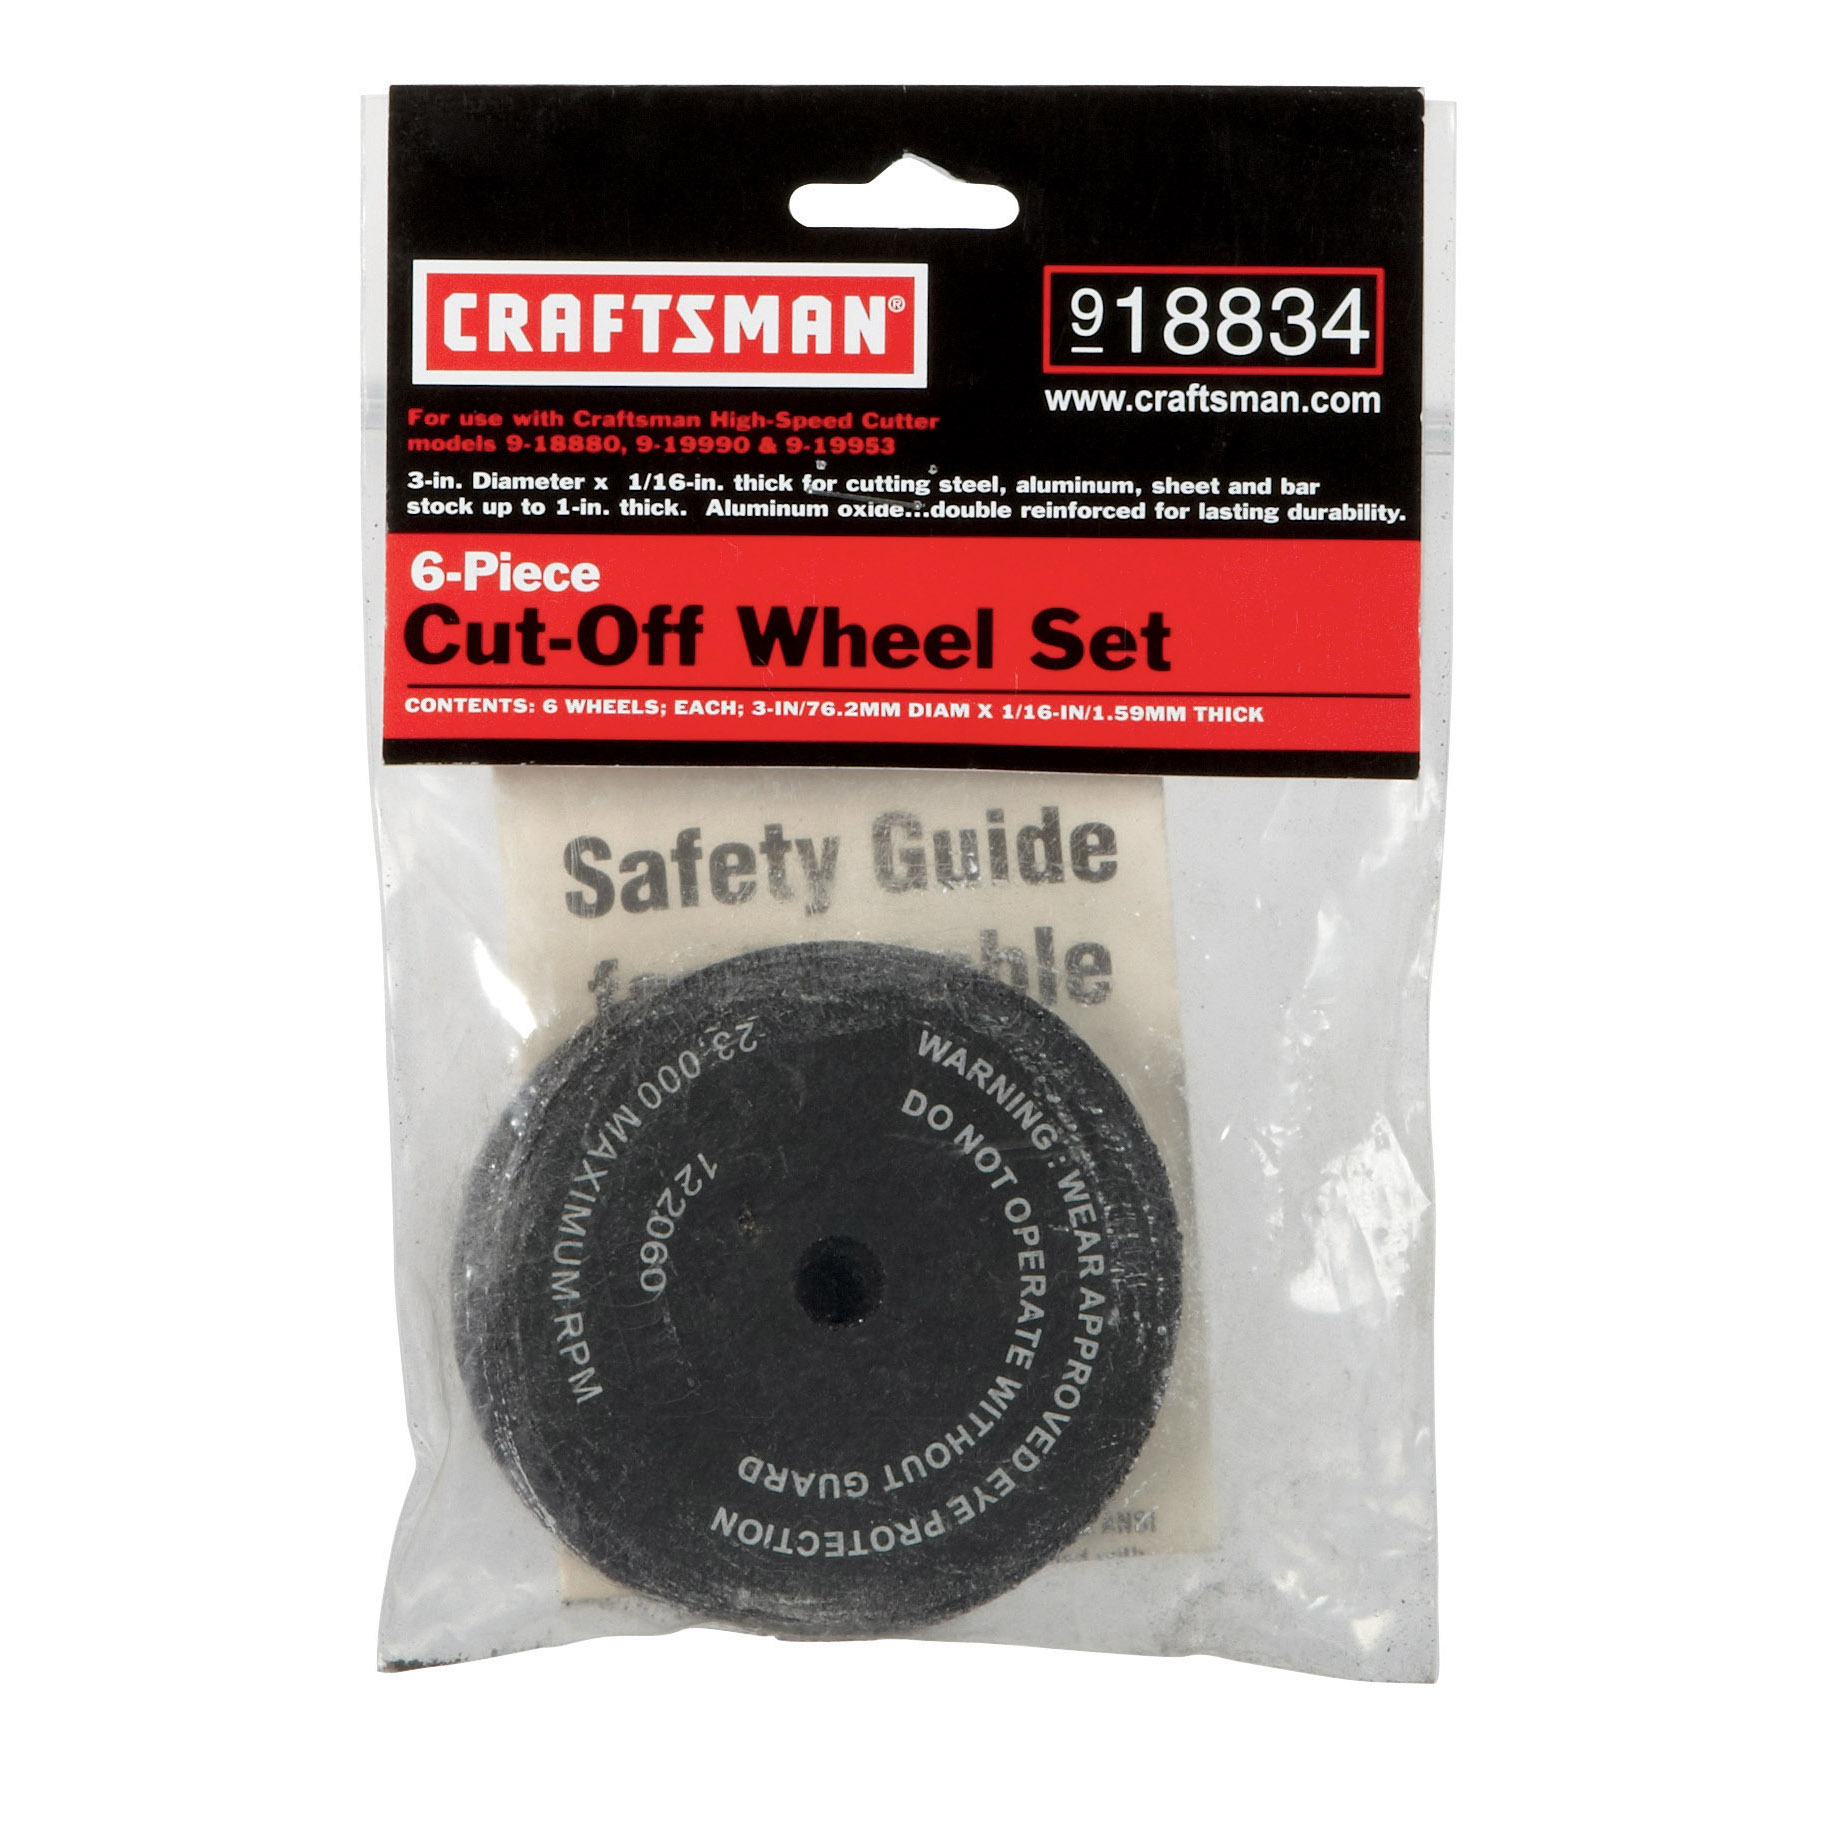 Craftsman Cut-Off Wheel for Model 1888